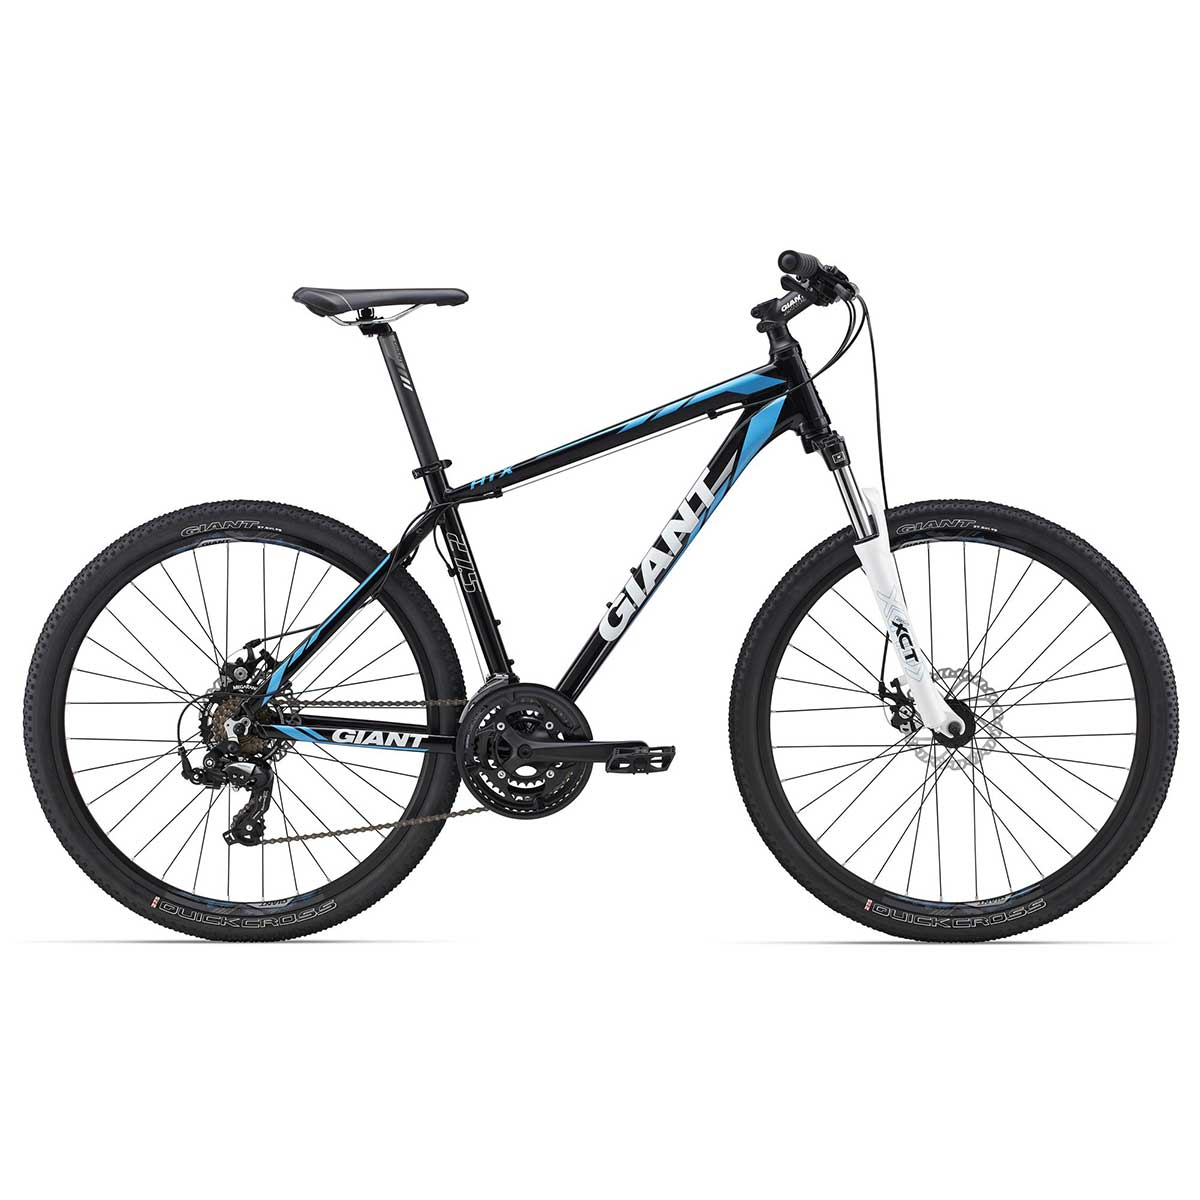 Buy Bicycle Online >> Buy Giant Atx 27 5 2 Mountain Bicycle Online India Giant Bicycles